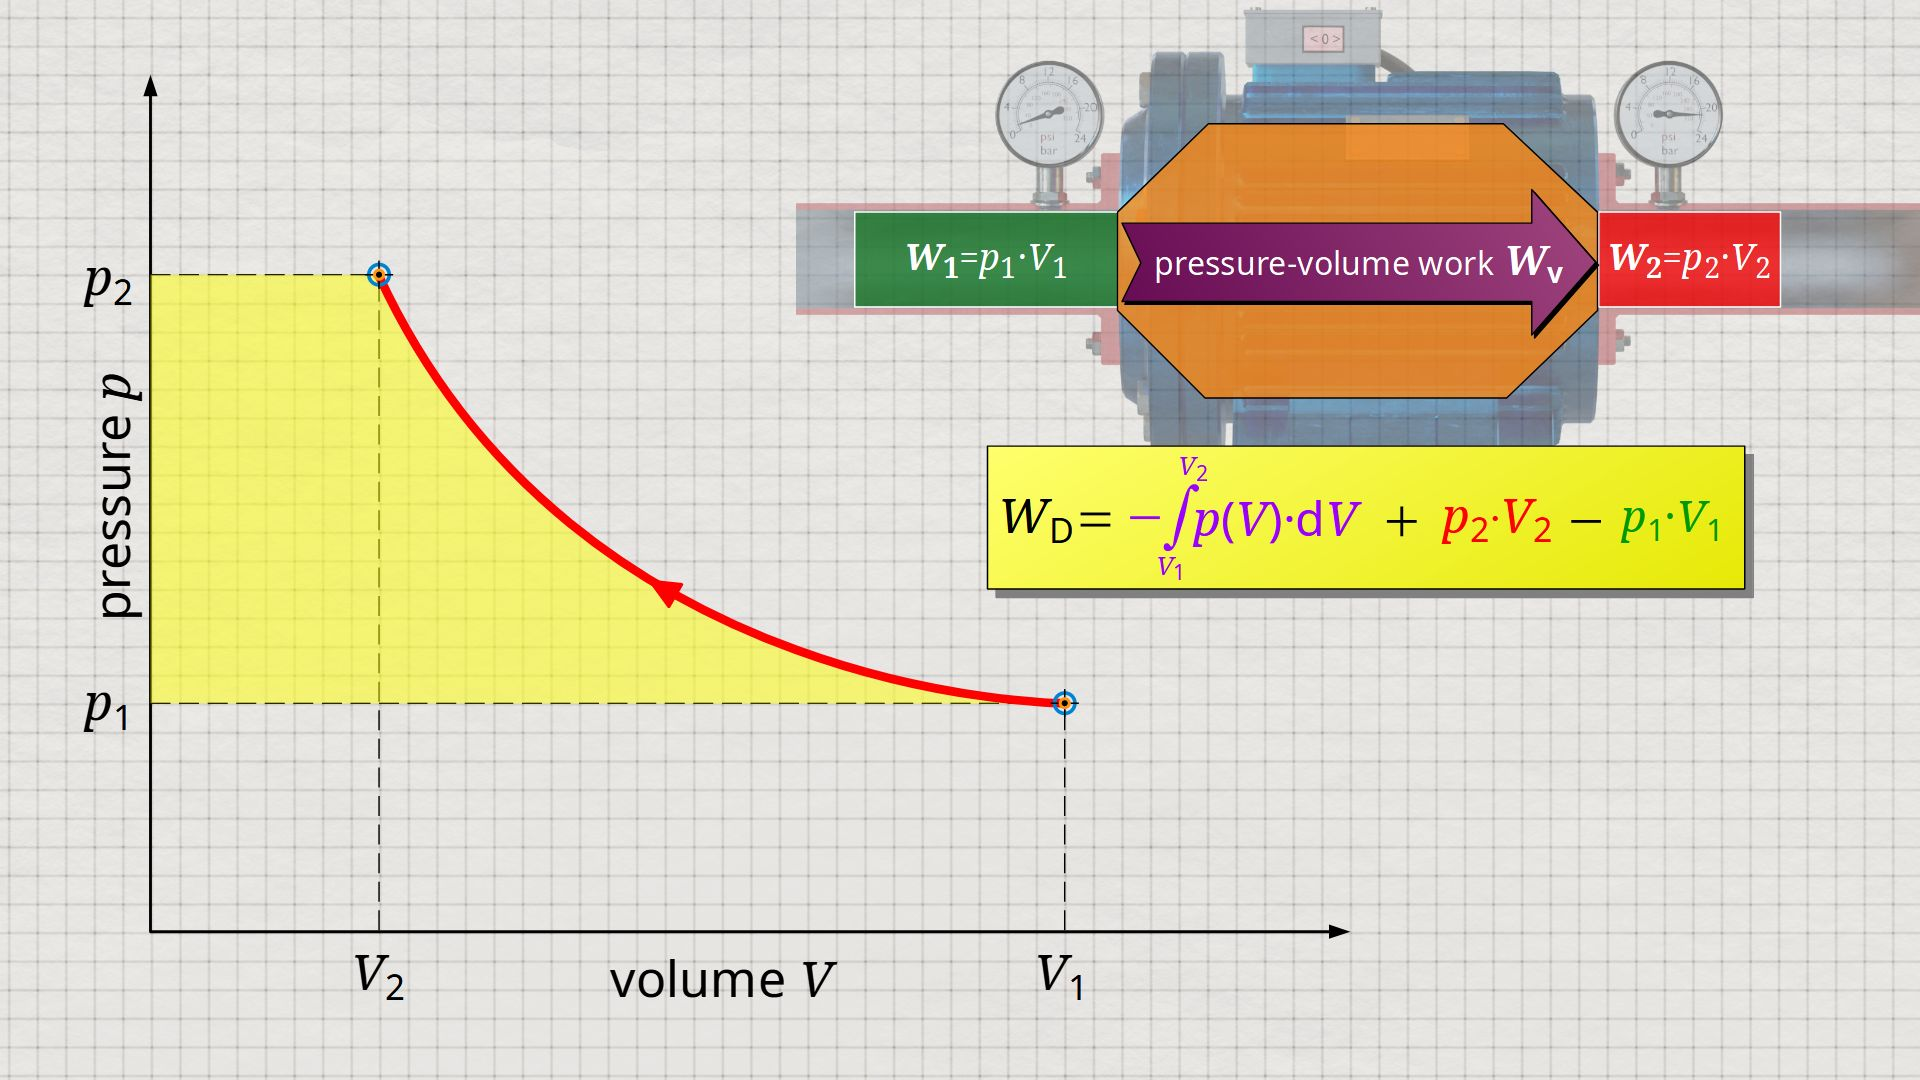 Flow process work as the area left of the p(V)-function in the volume-pressure diagram